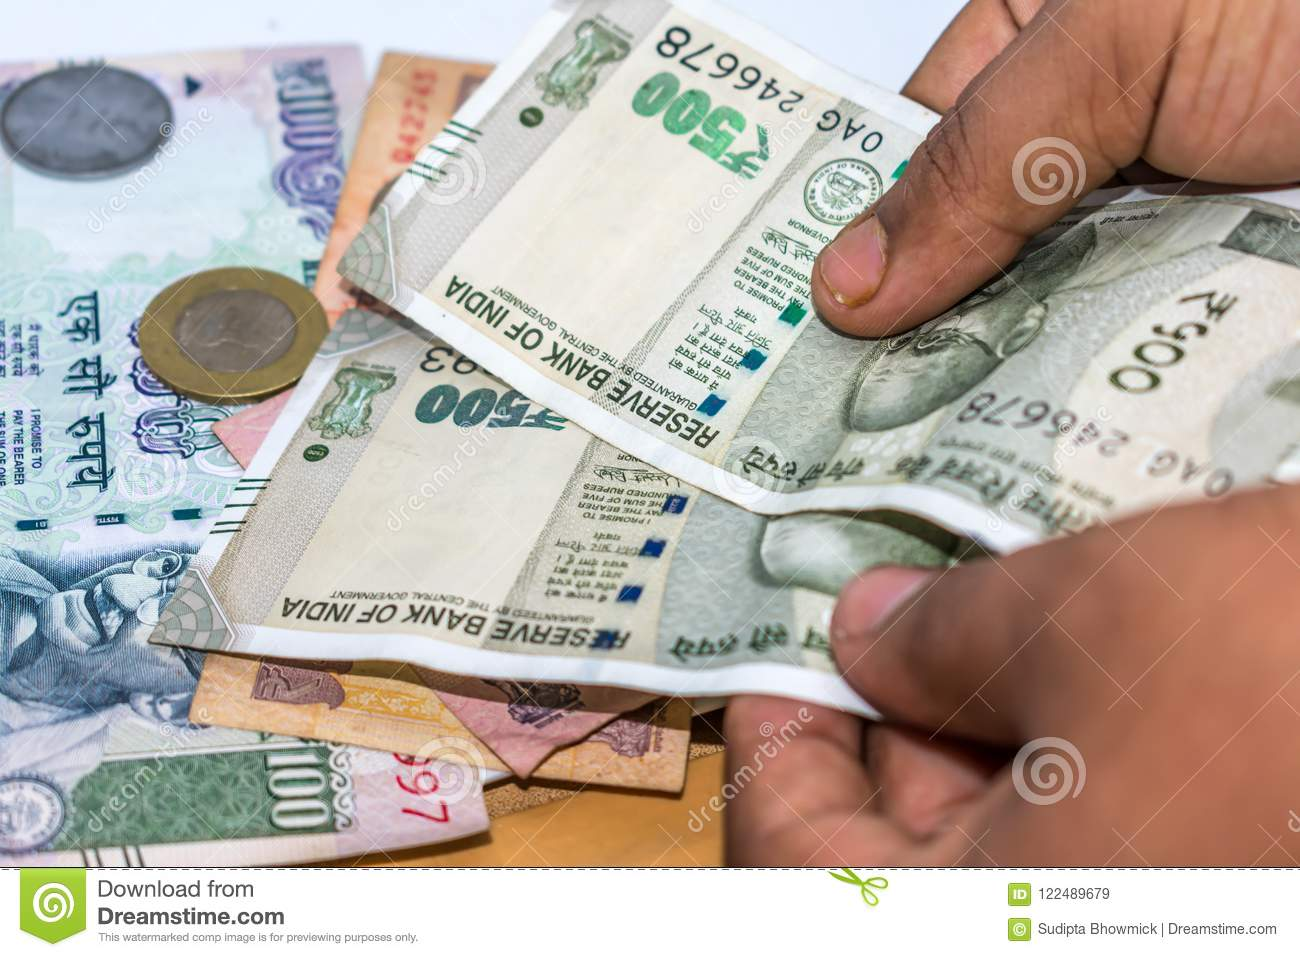 Counting Indian rupee currency,money